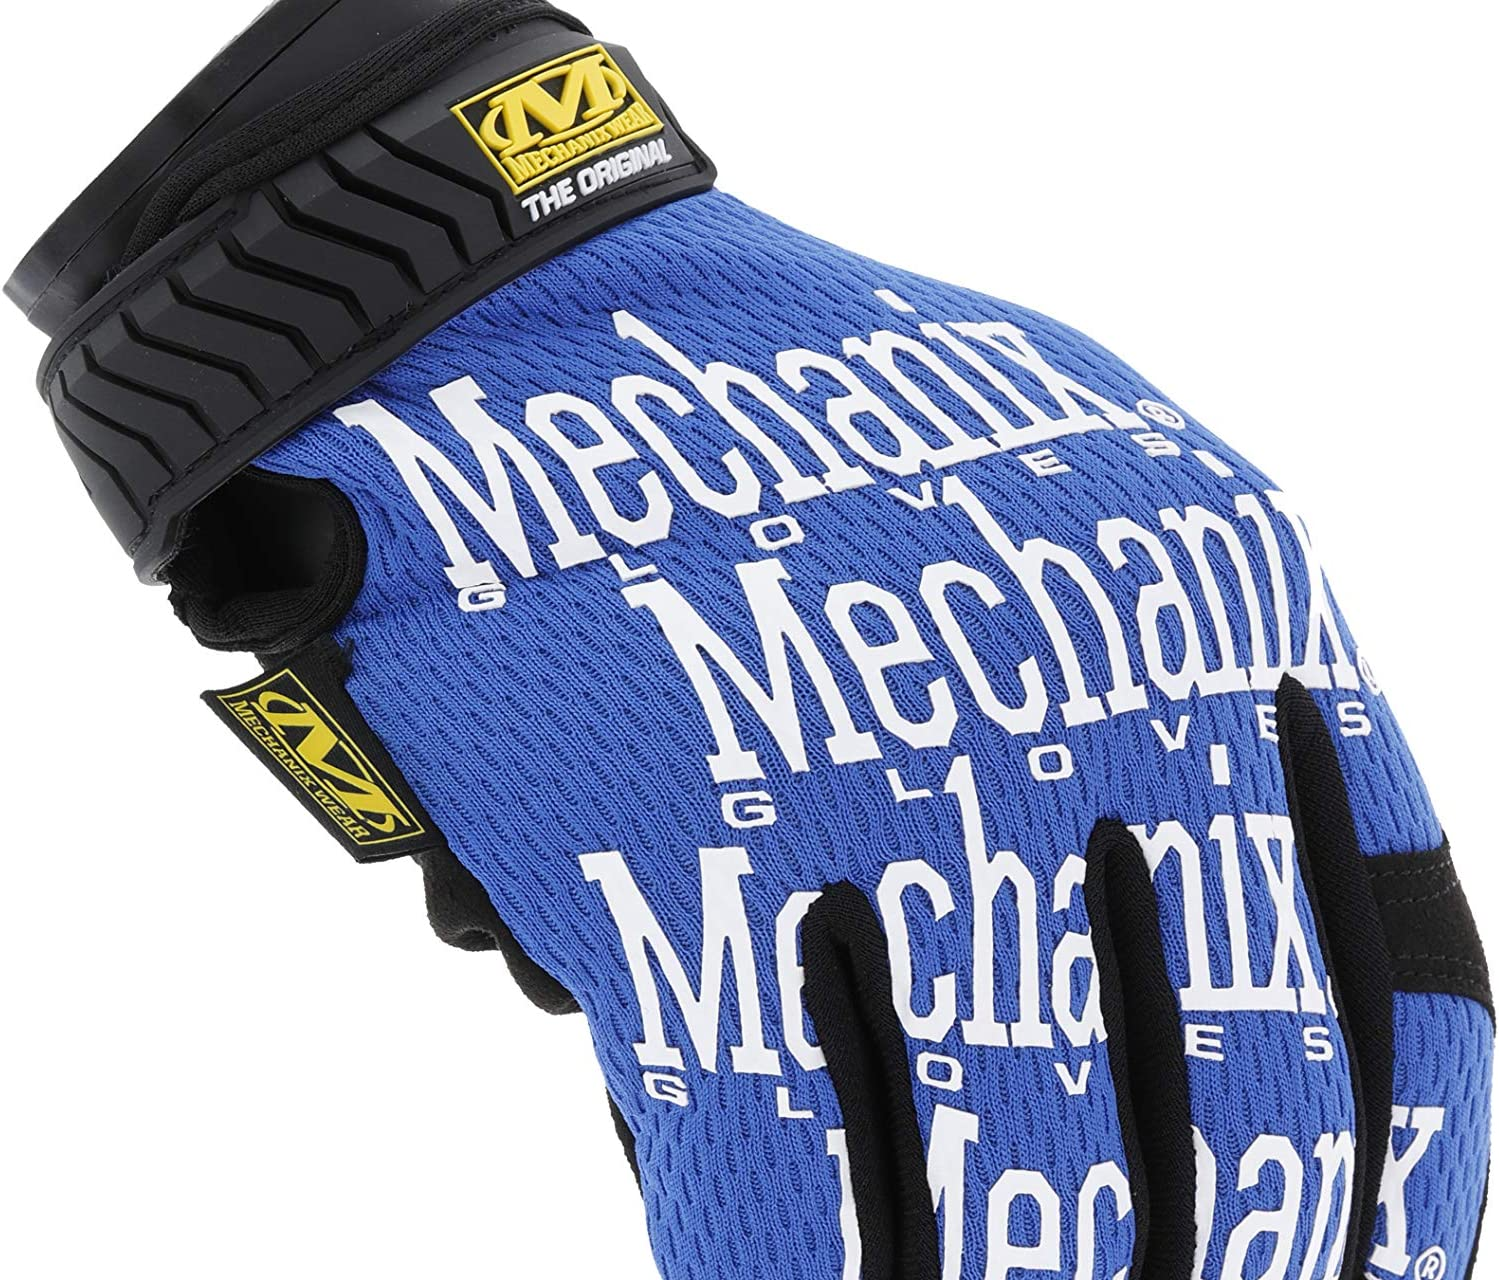 Medio, Azul Guantes Originales Mechanix Wear